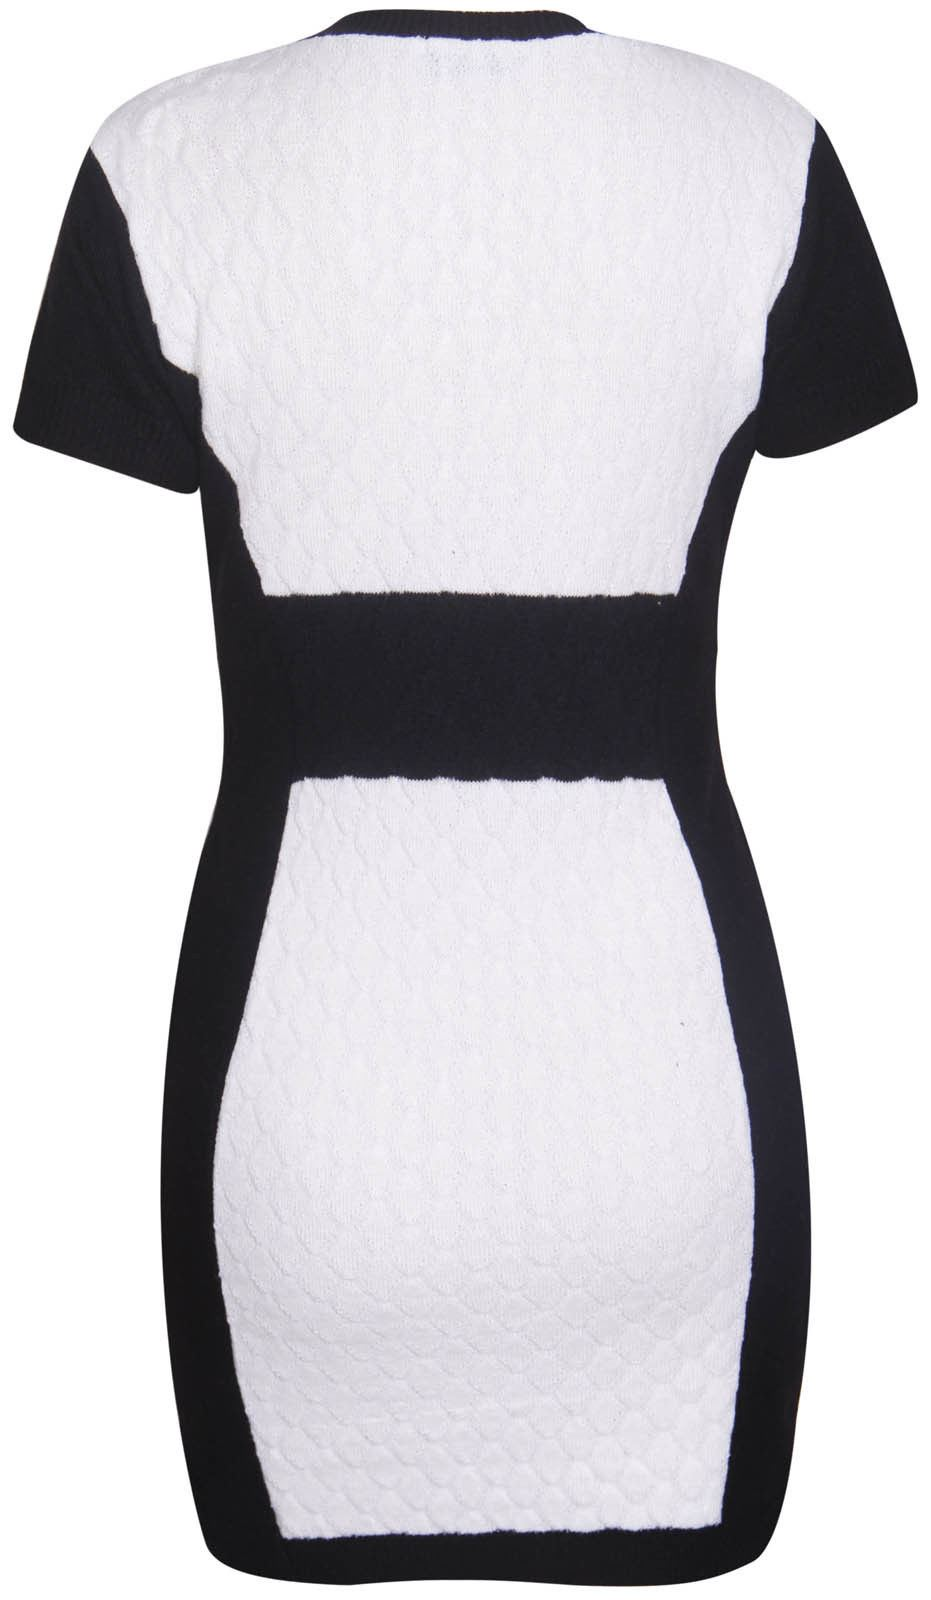 New-Womens-Plus-Size-Contrast-Panel-Diamond-Knit-Jumper-Dress-16-26